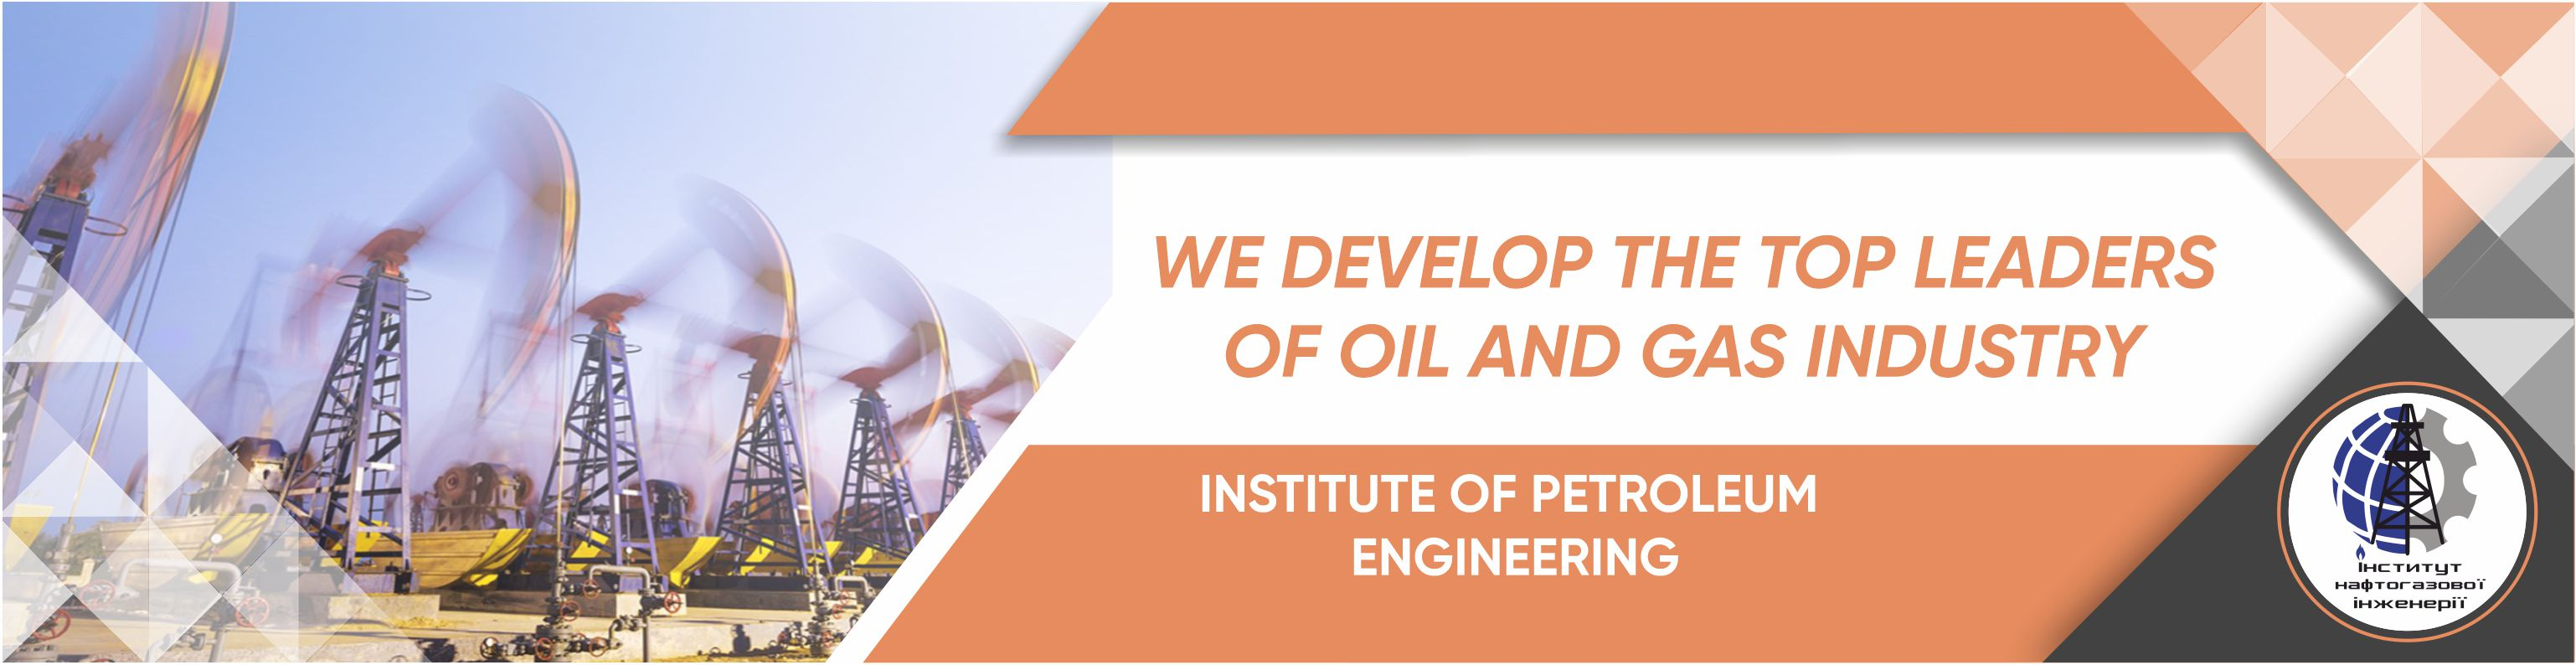 Institute of Petroleum Engineering